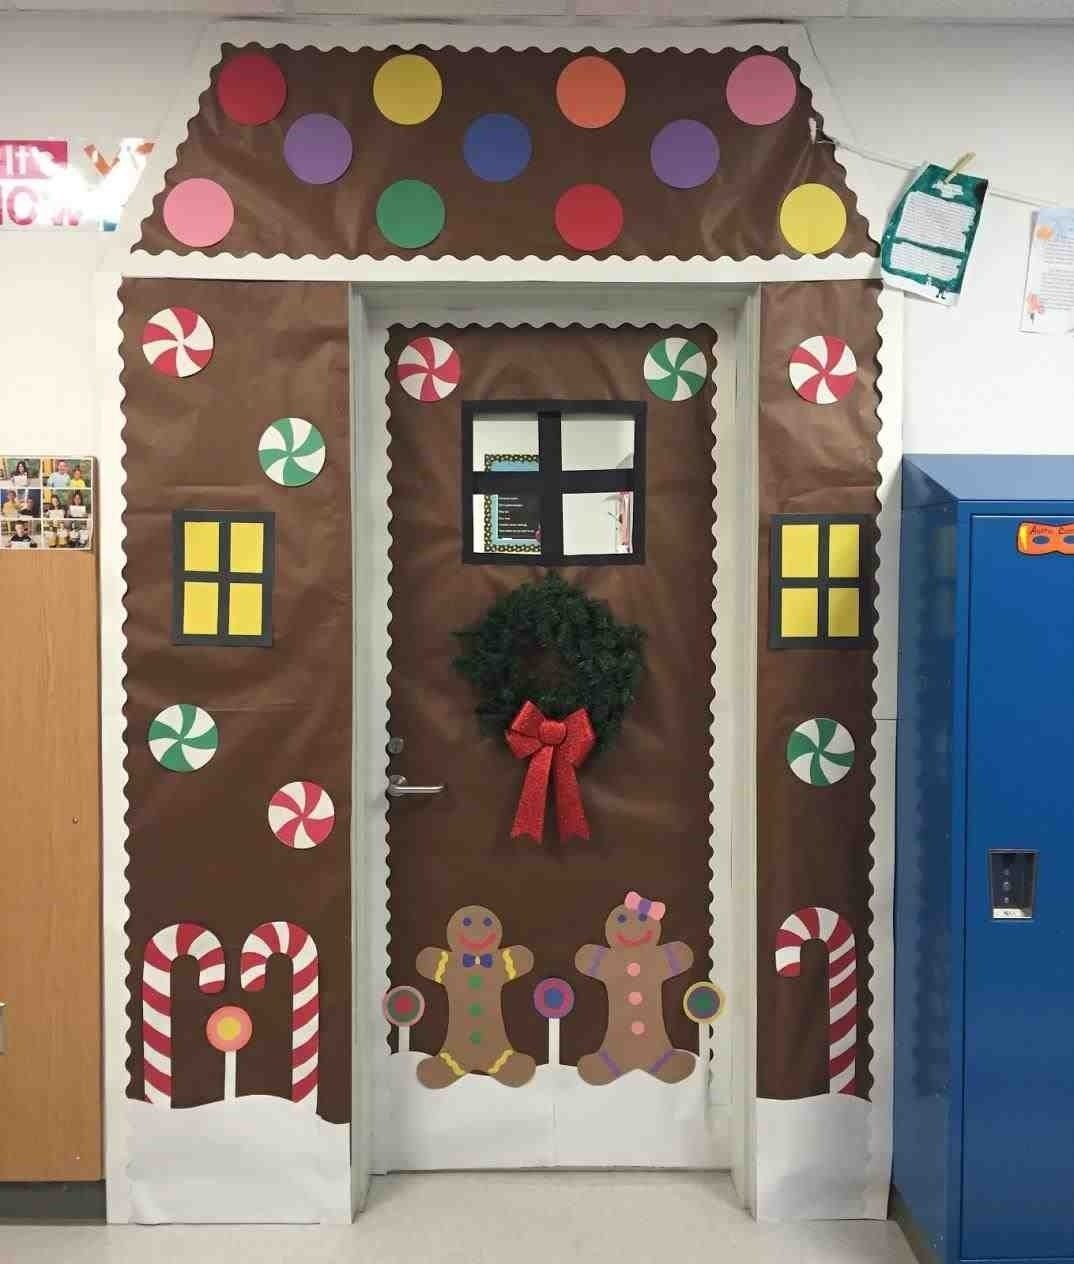 10 Gorgeous Classroom Christmas Door Decorating Contest Ideas shining ideas gingerbread house door decorating contest classroom 2020